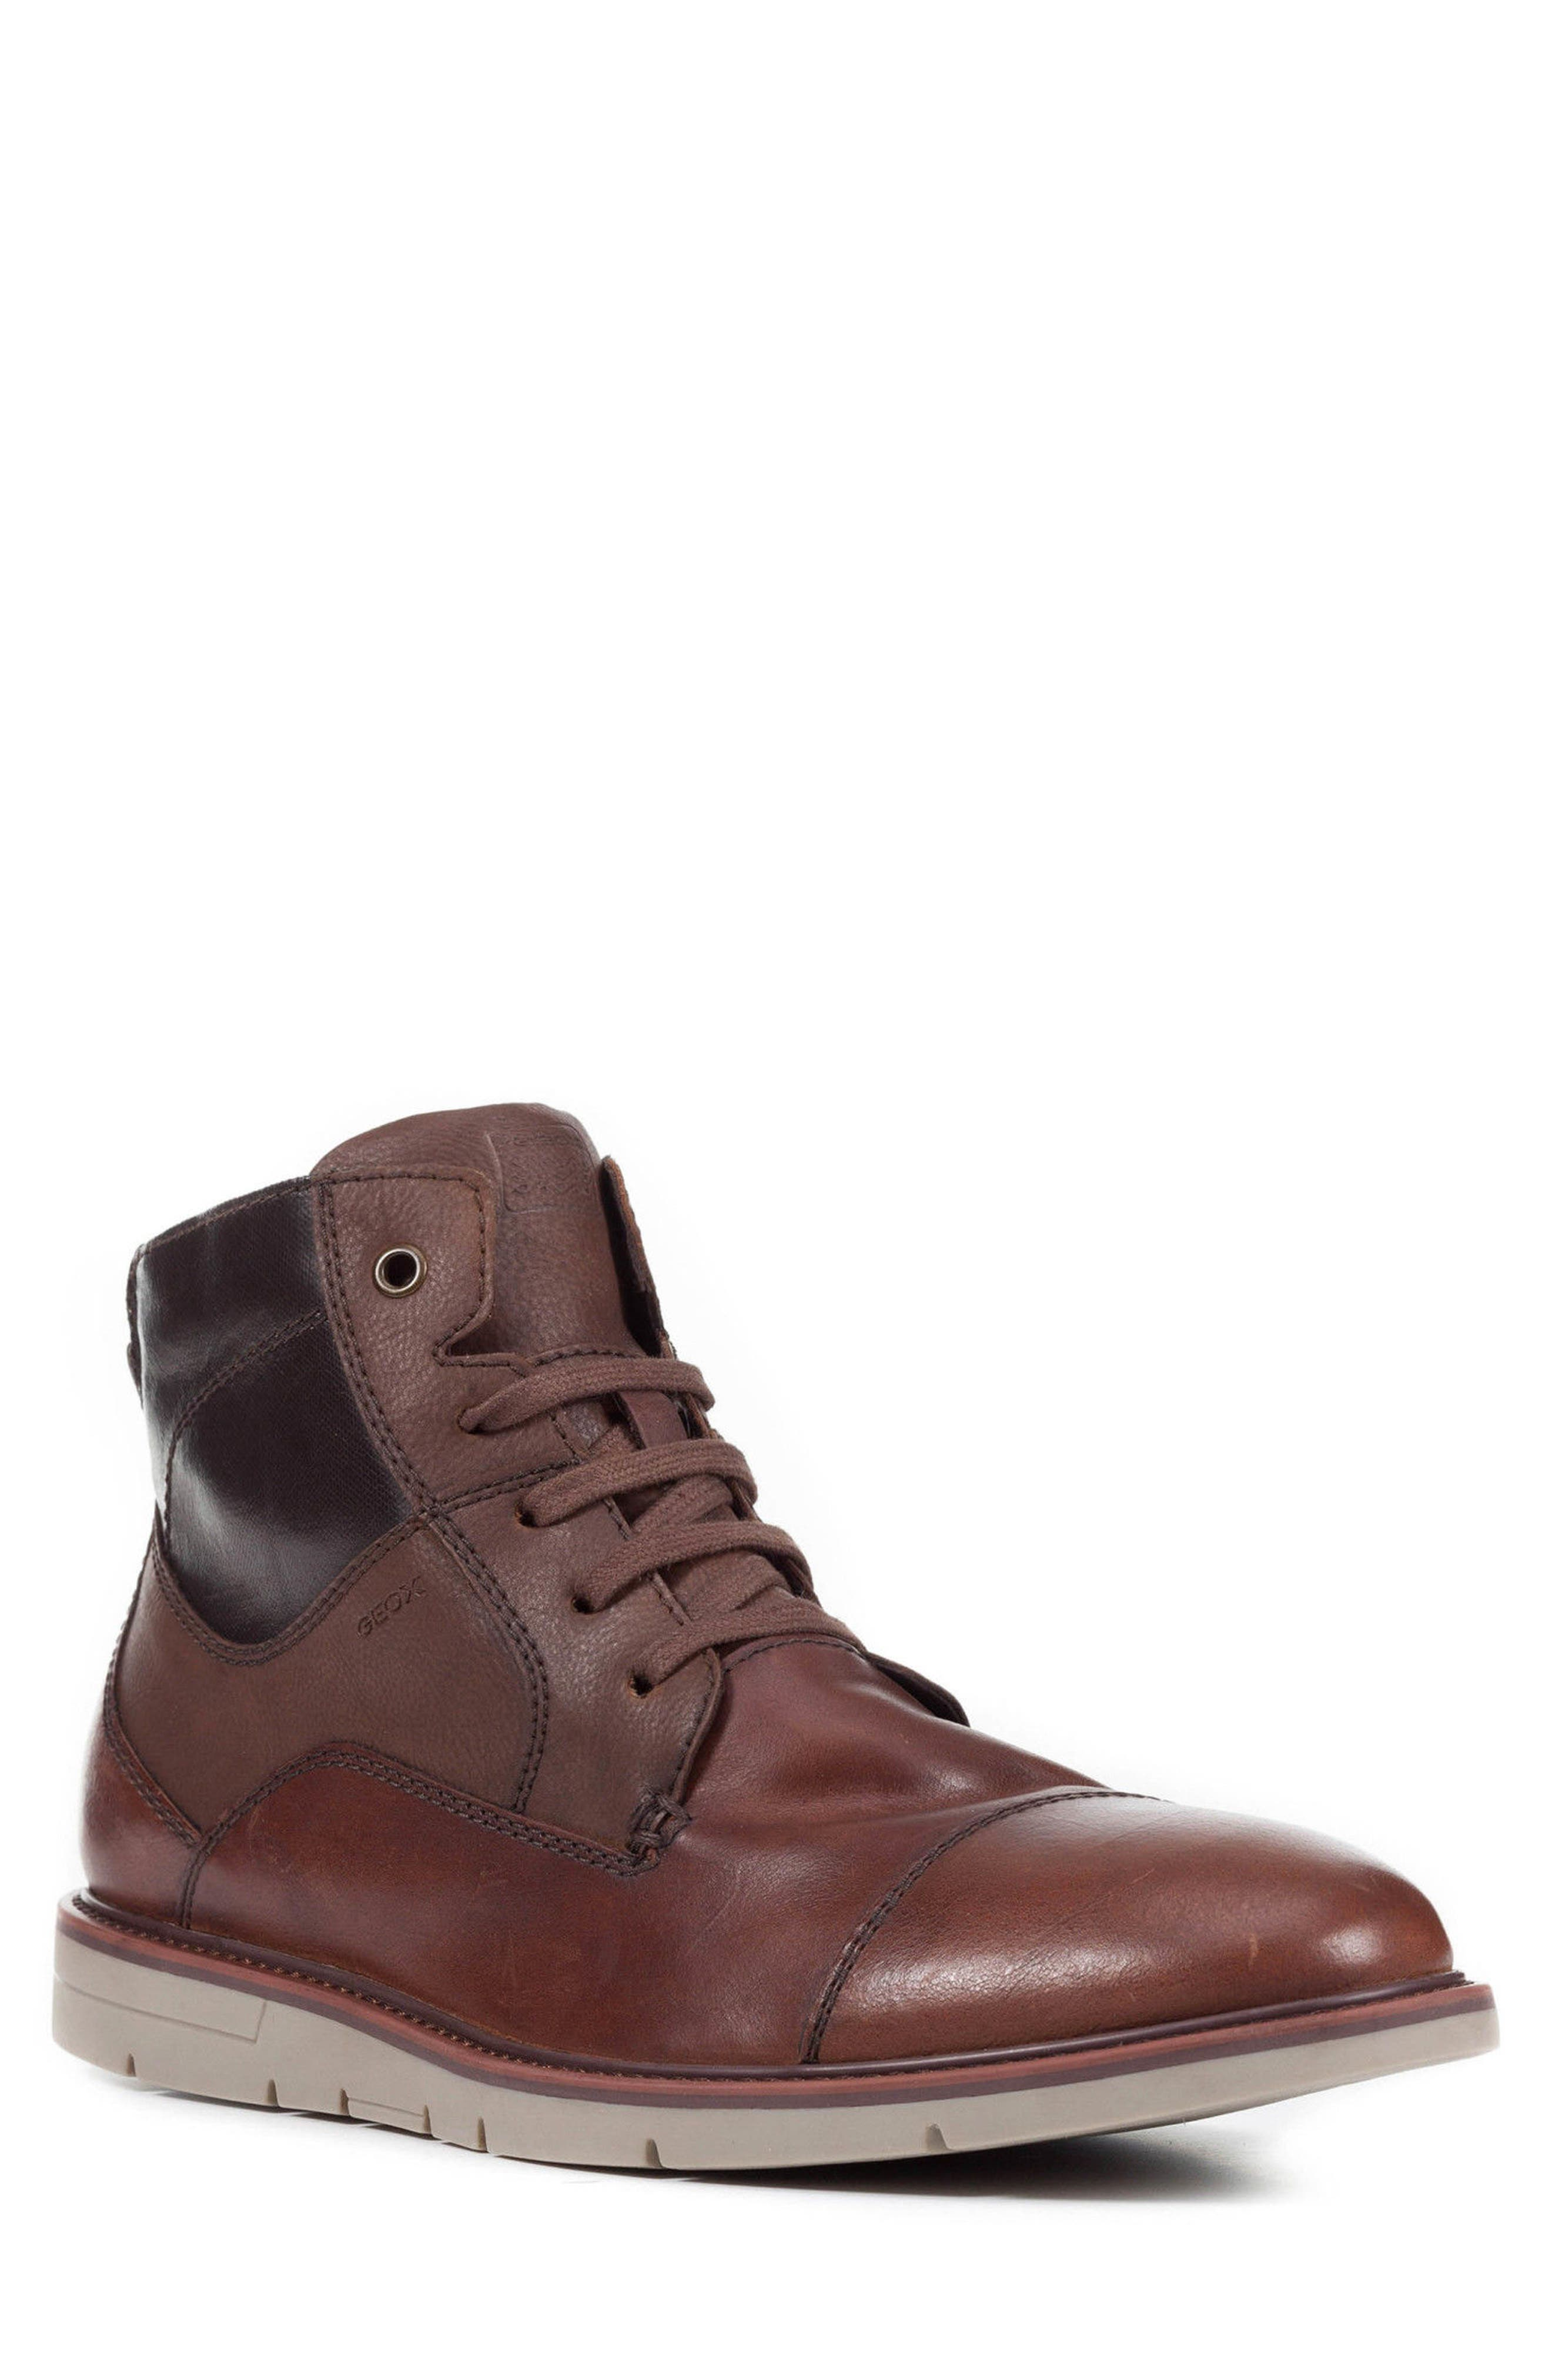 Main Image - Geox Muvet 5 Cap Toe Boot (men)